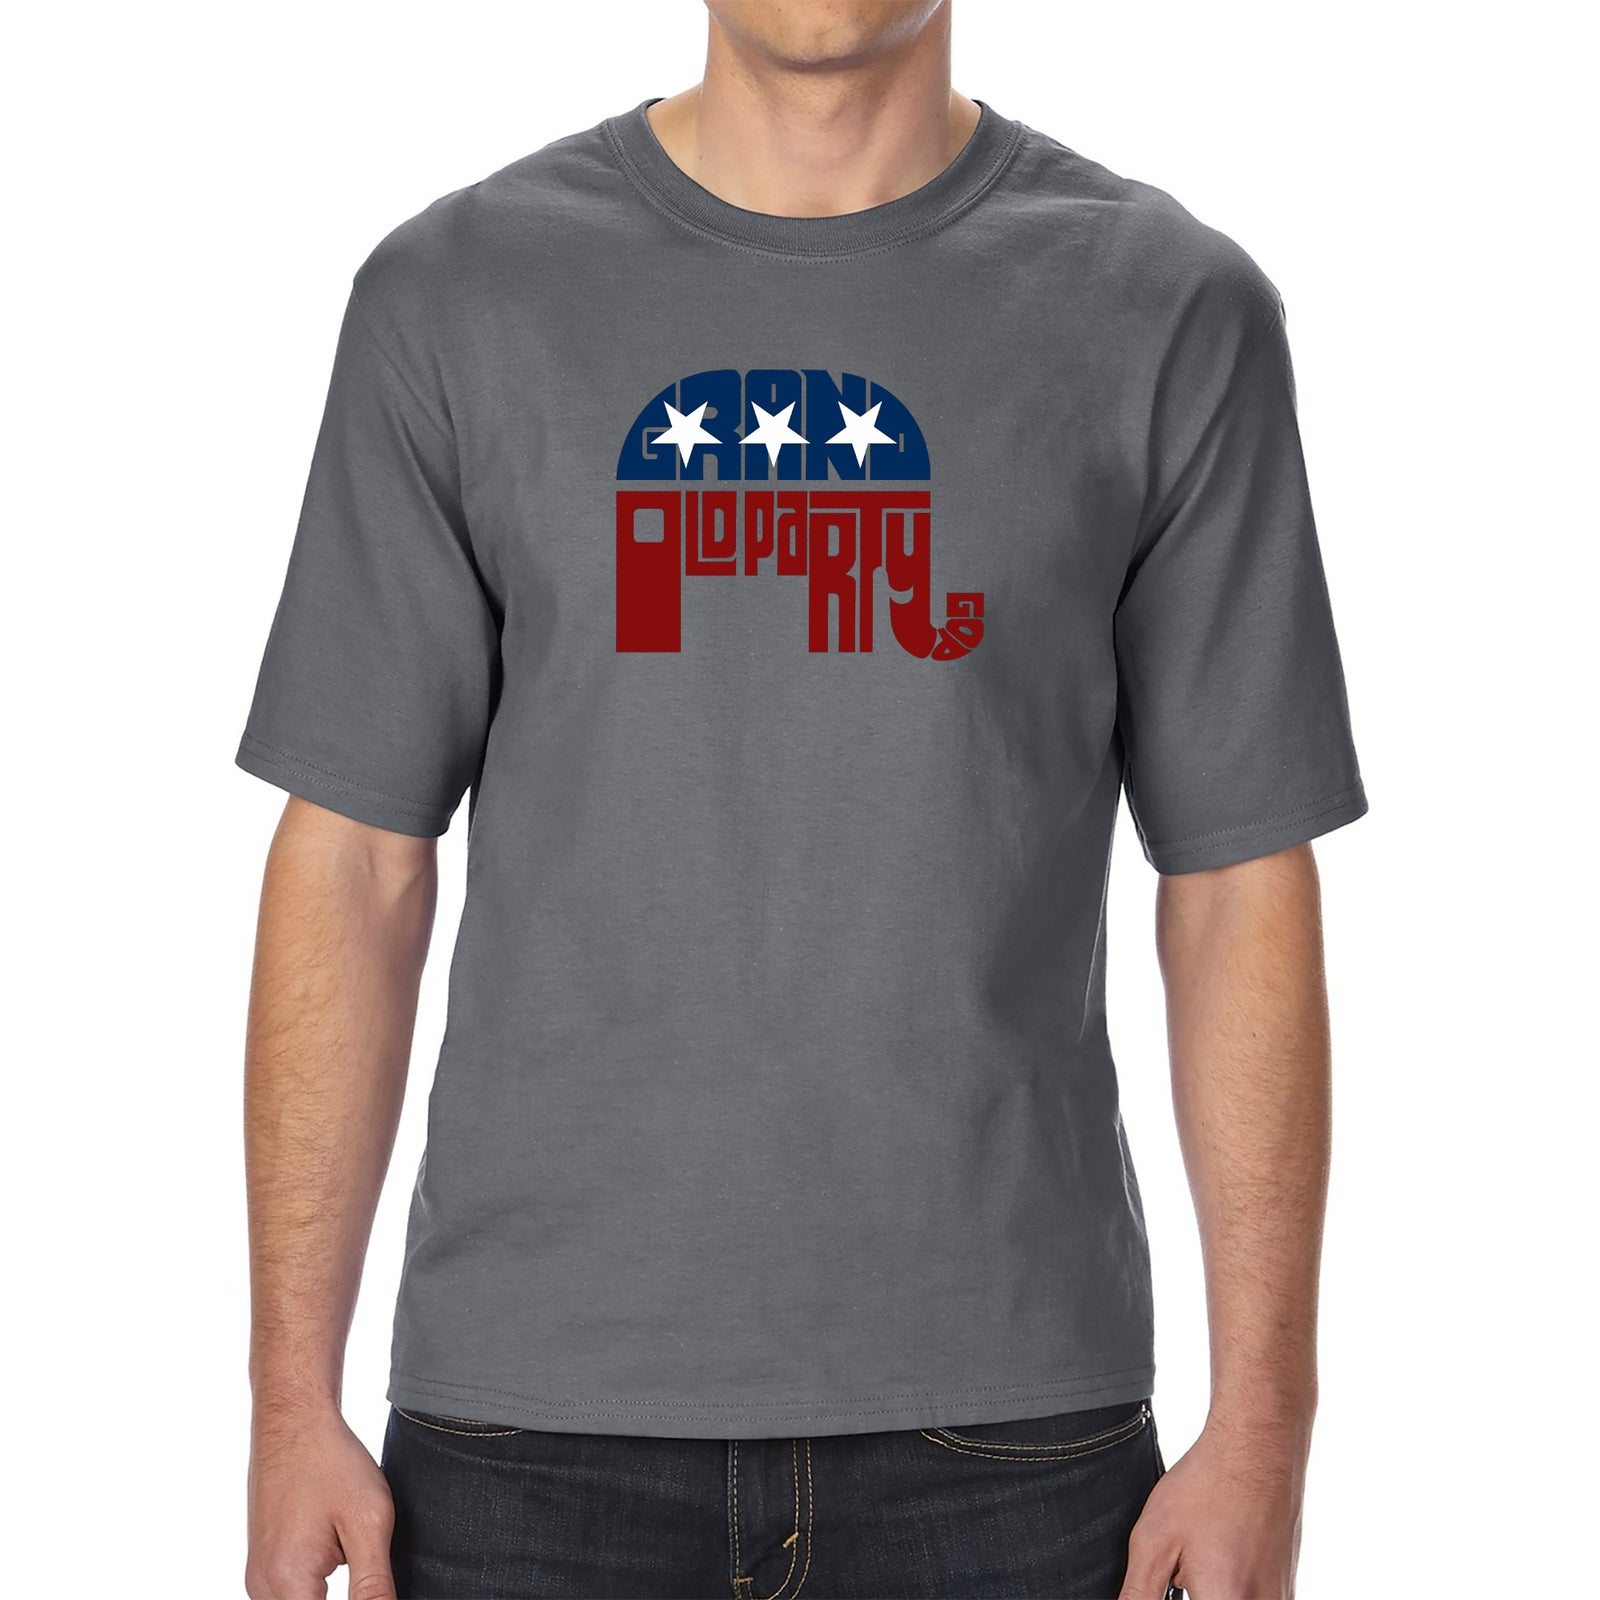 Men's Tall and Long Word Art T-shirt - REPUBLICAN - GRAND OLD PARTY